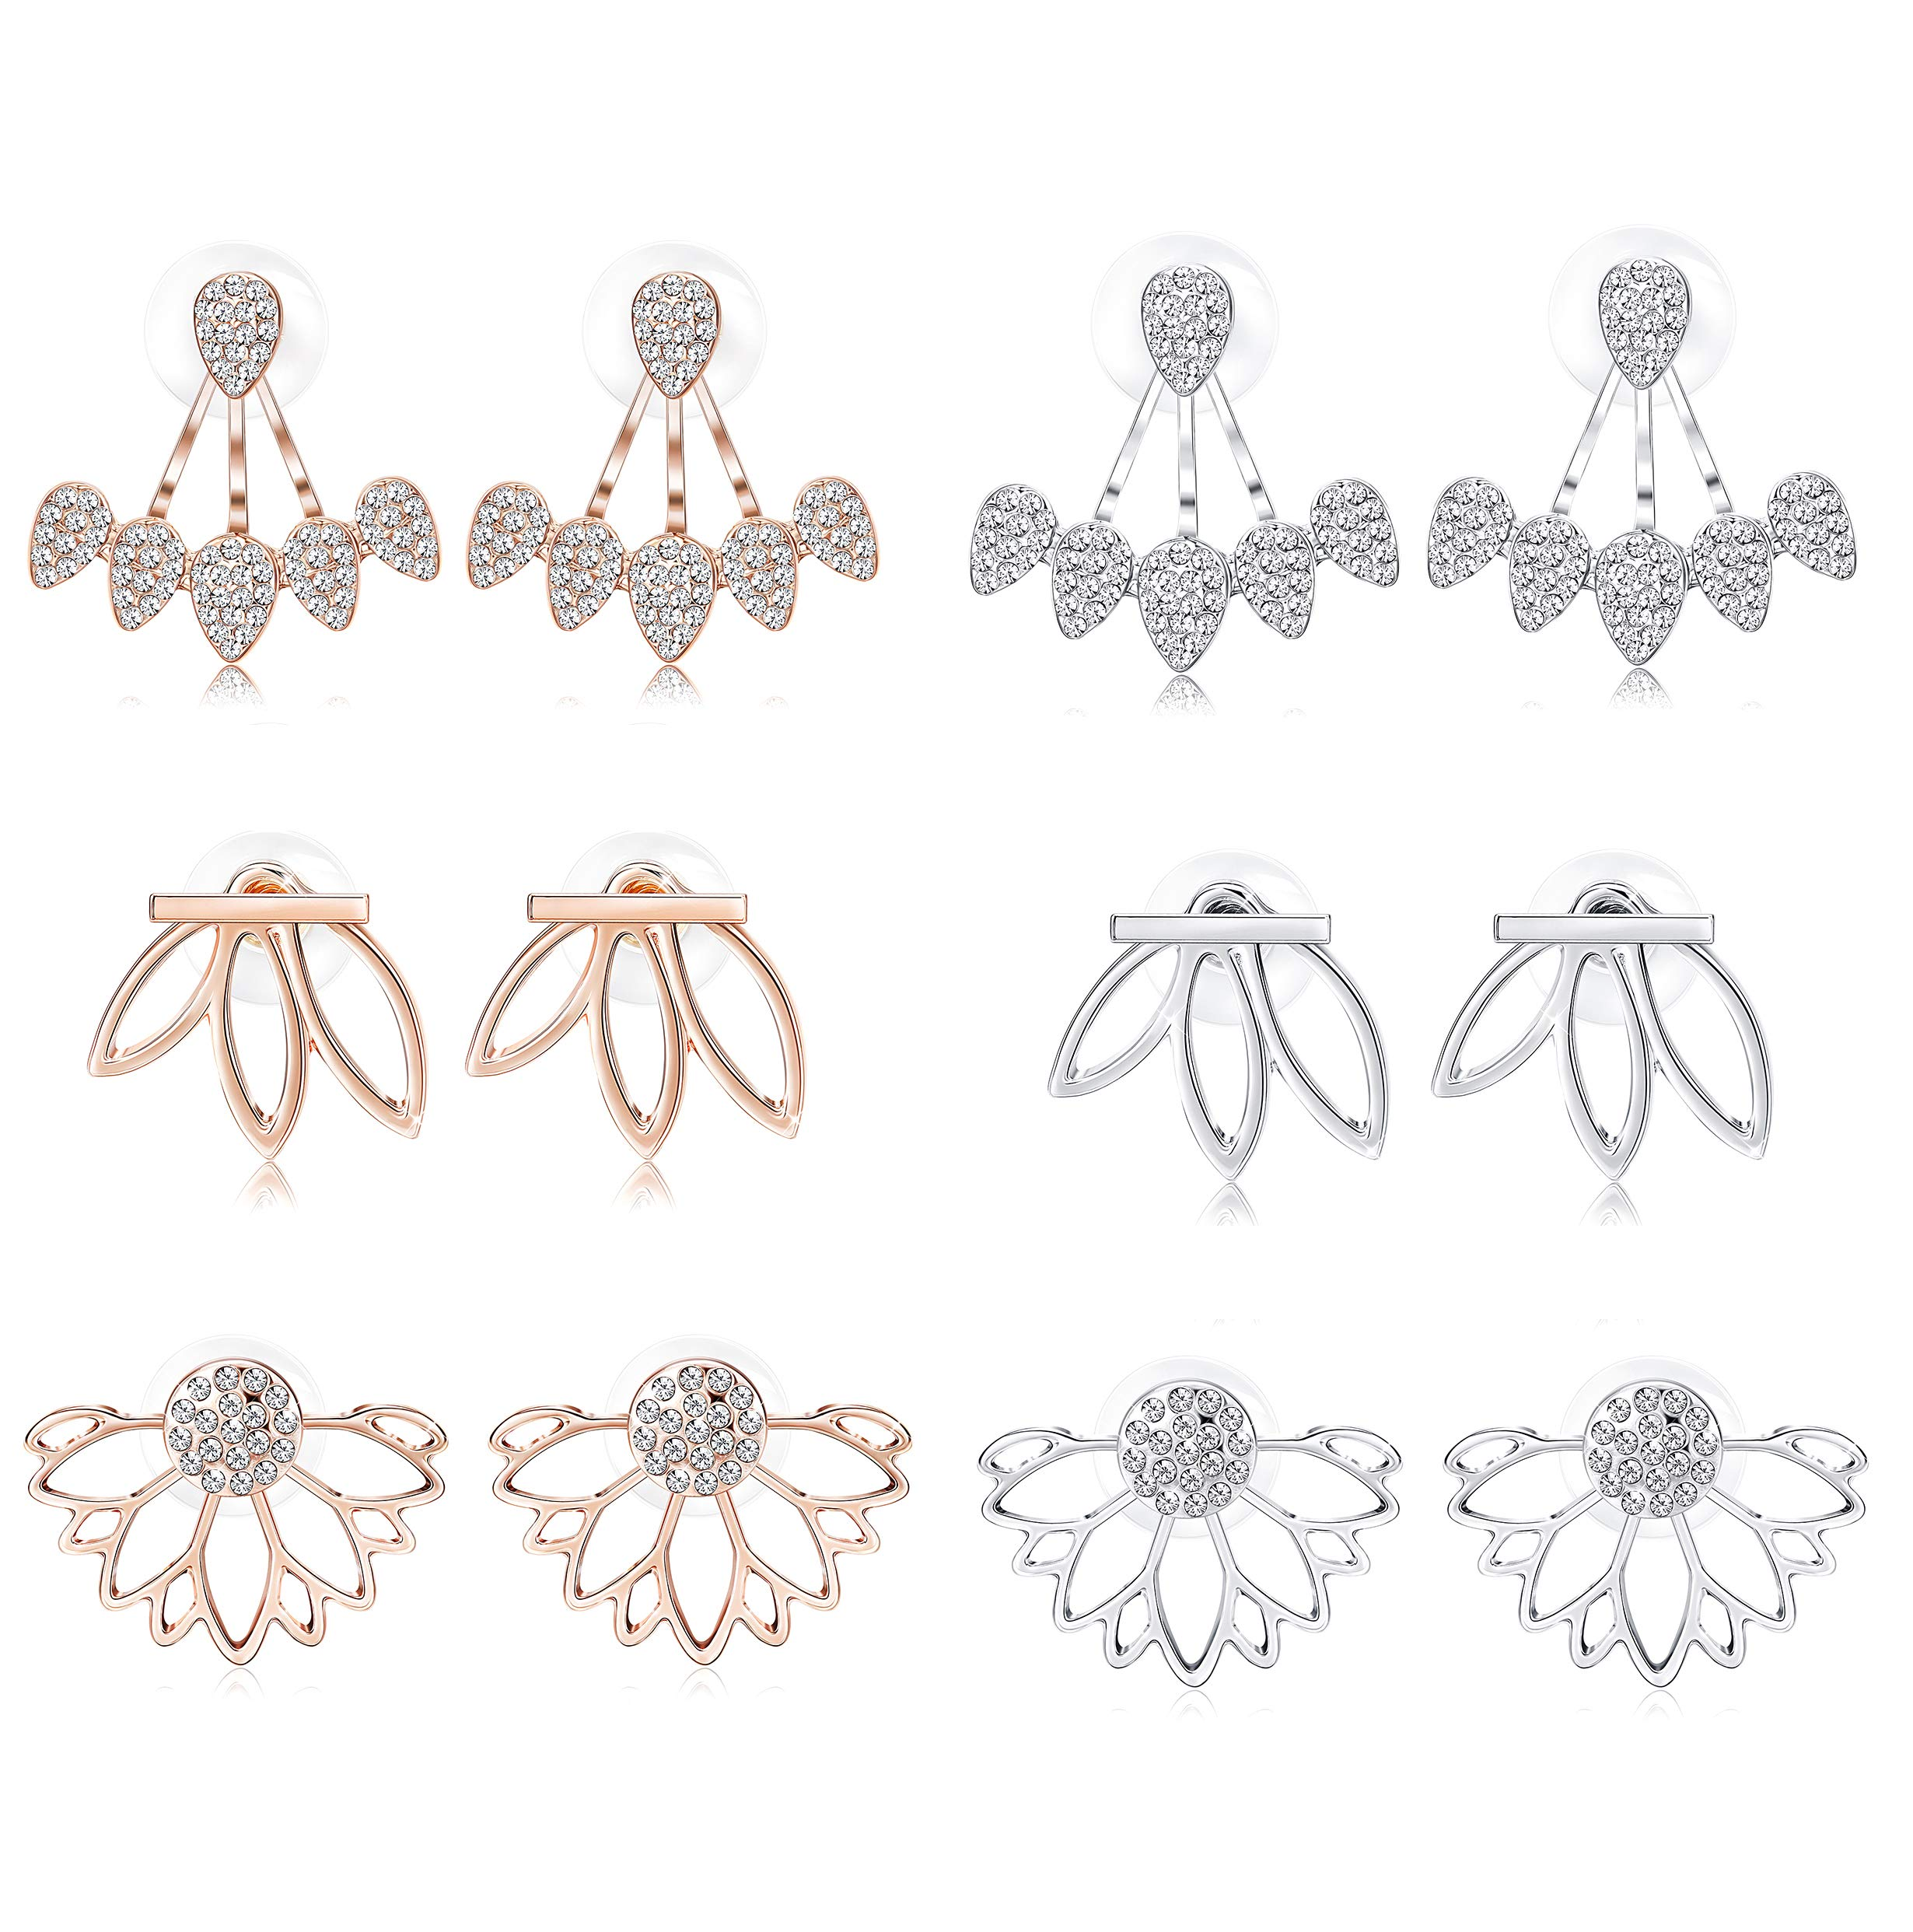 LOYALLOOK Hollow Lotus Earrings for Women Girls Fashion Flower Ear Jackets Crystal Simple Chic Stud Earrings Bar Stud Earrings Cuff Earrings Set (6 Pairs) by LOYALLOOK